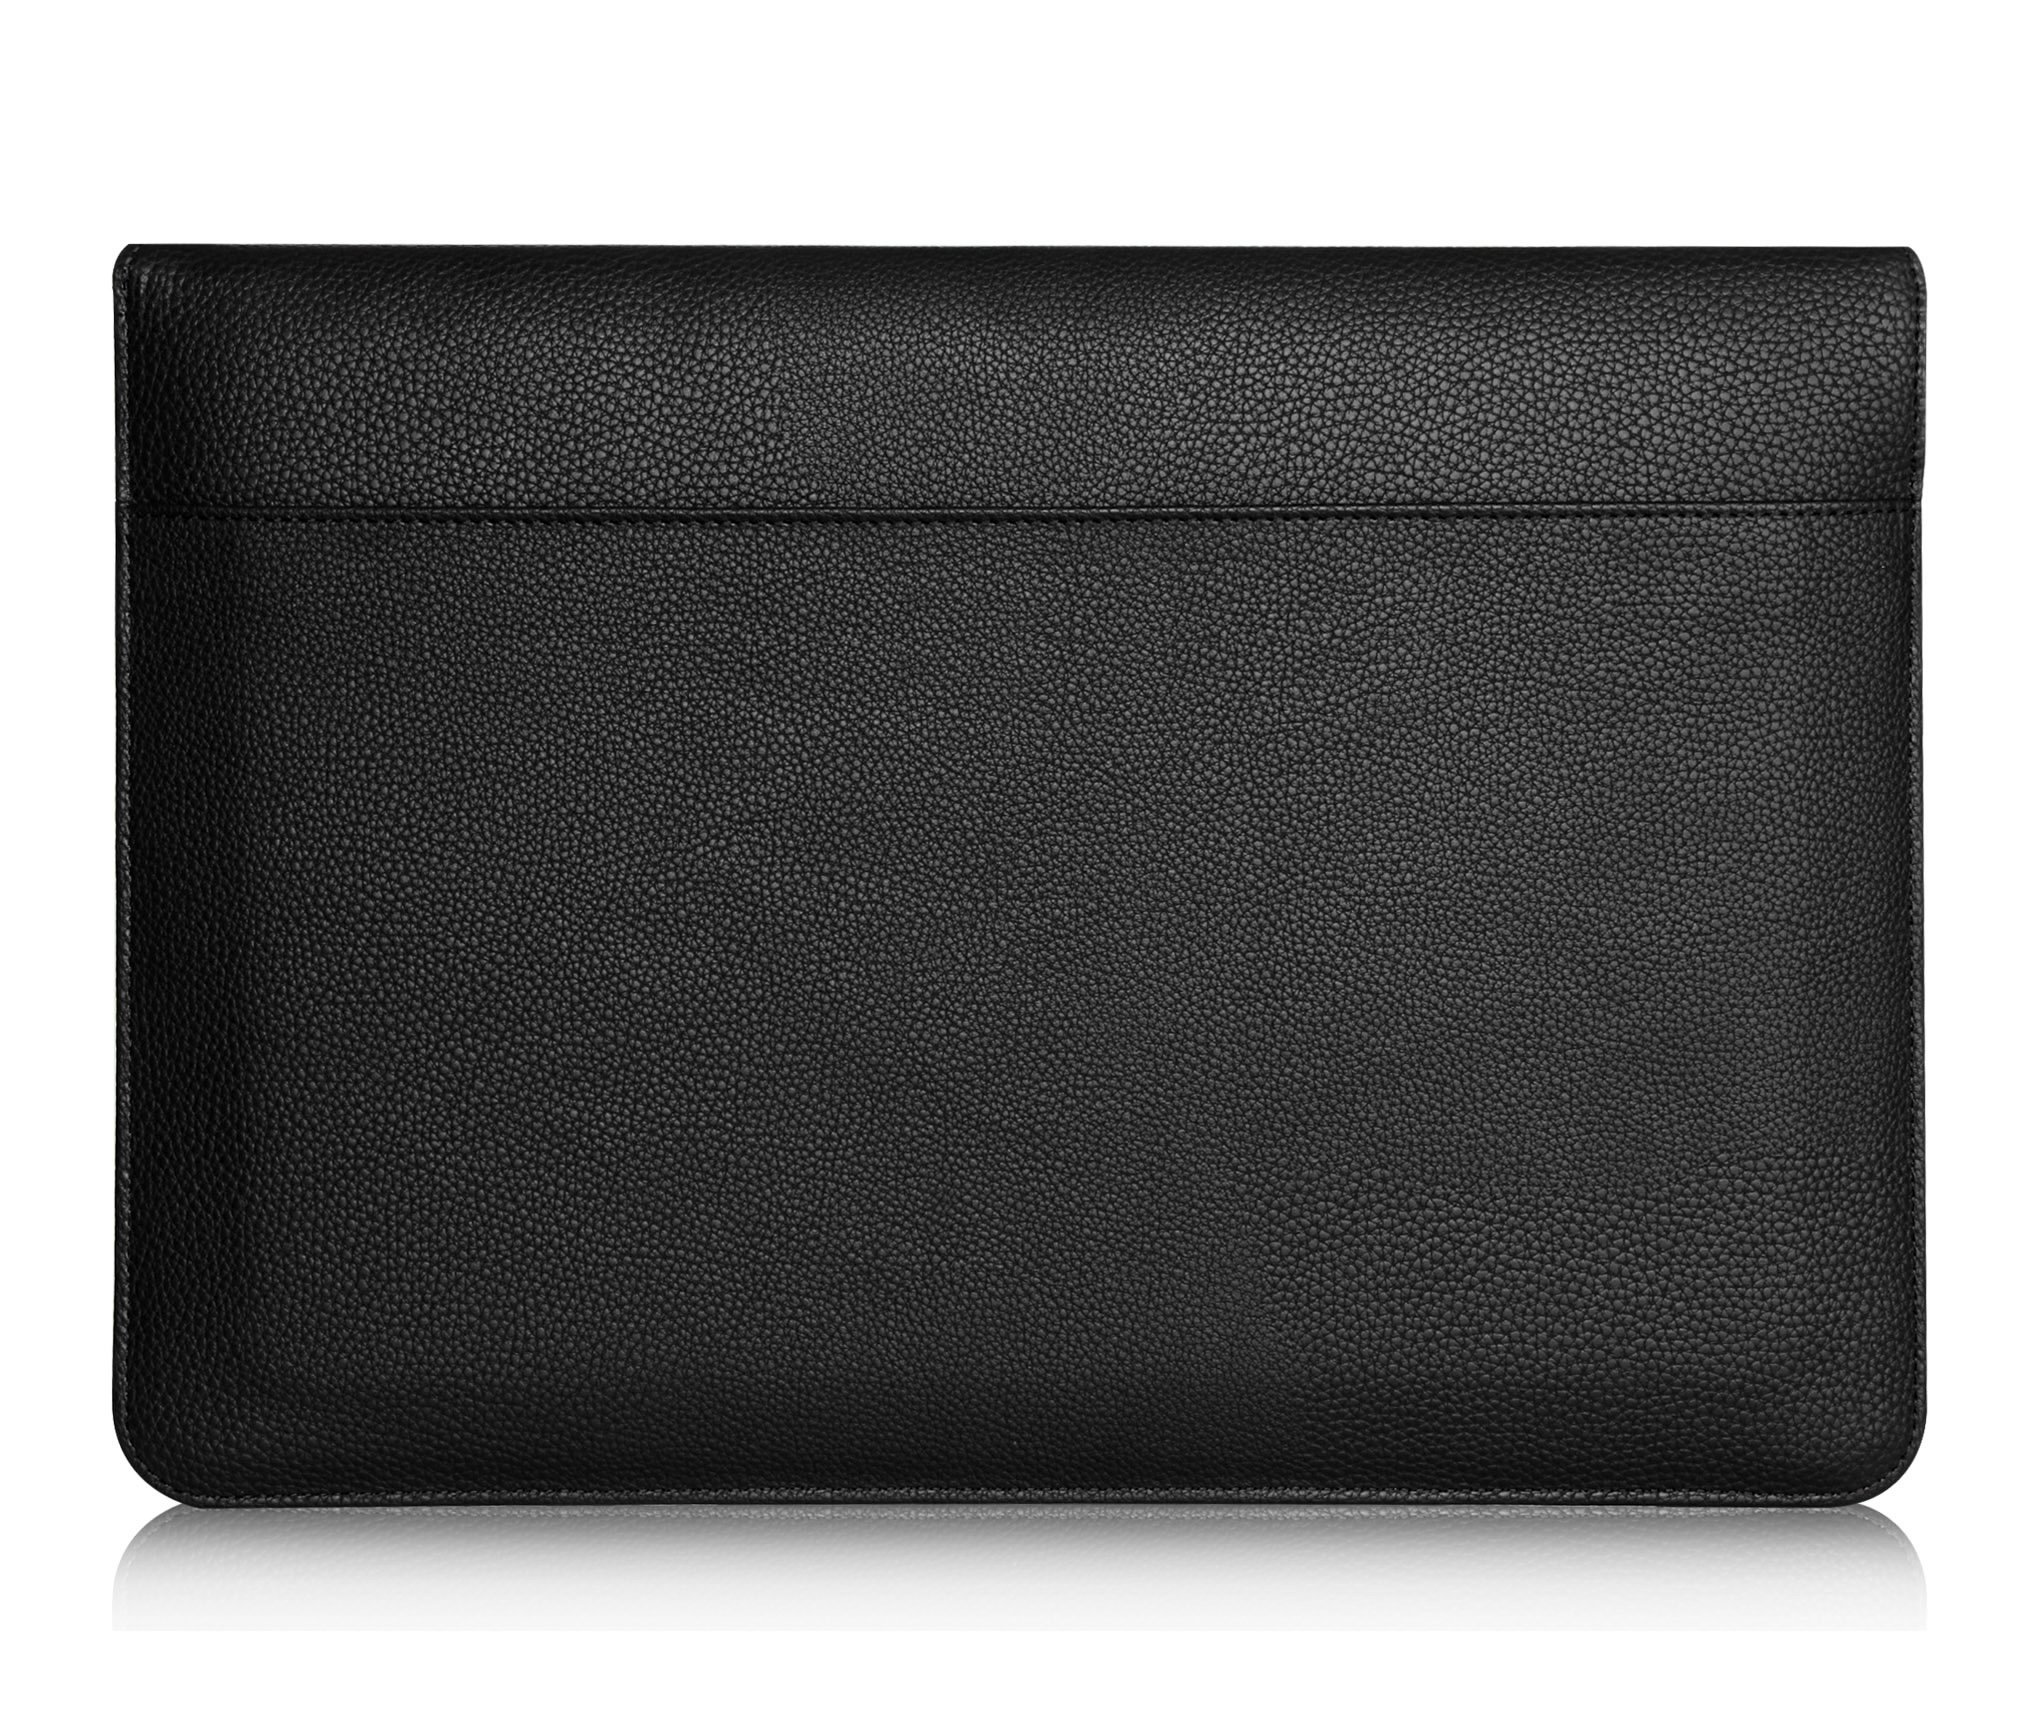 ProCase Surface Laptop 2017 / Surface Book MacBook Pro 15 Case Sleeve, Protective Sleeve Cover for 15'' MacBook Pro 2018 2017 2016 / Pro Retina/MacBook Air 13.3'' / Surface Book Tablet Laptop -Black